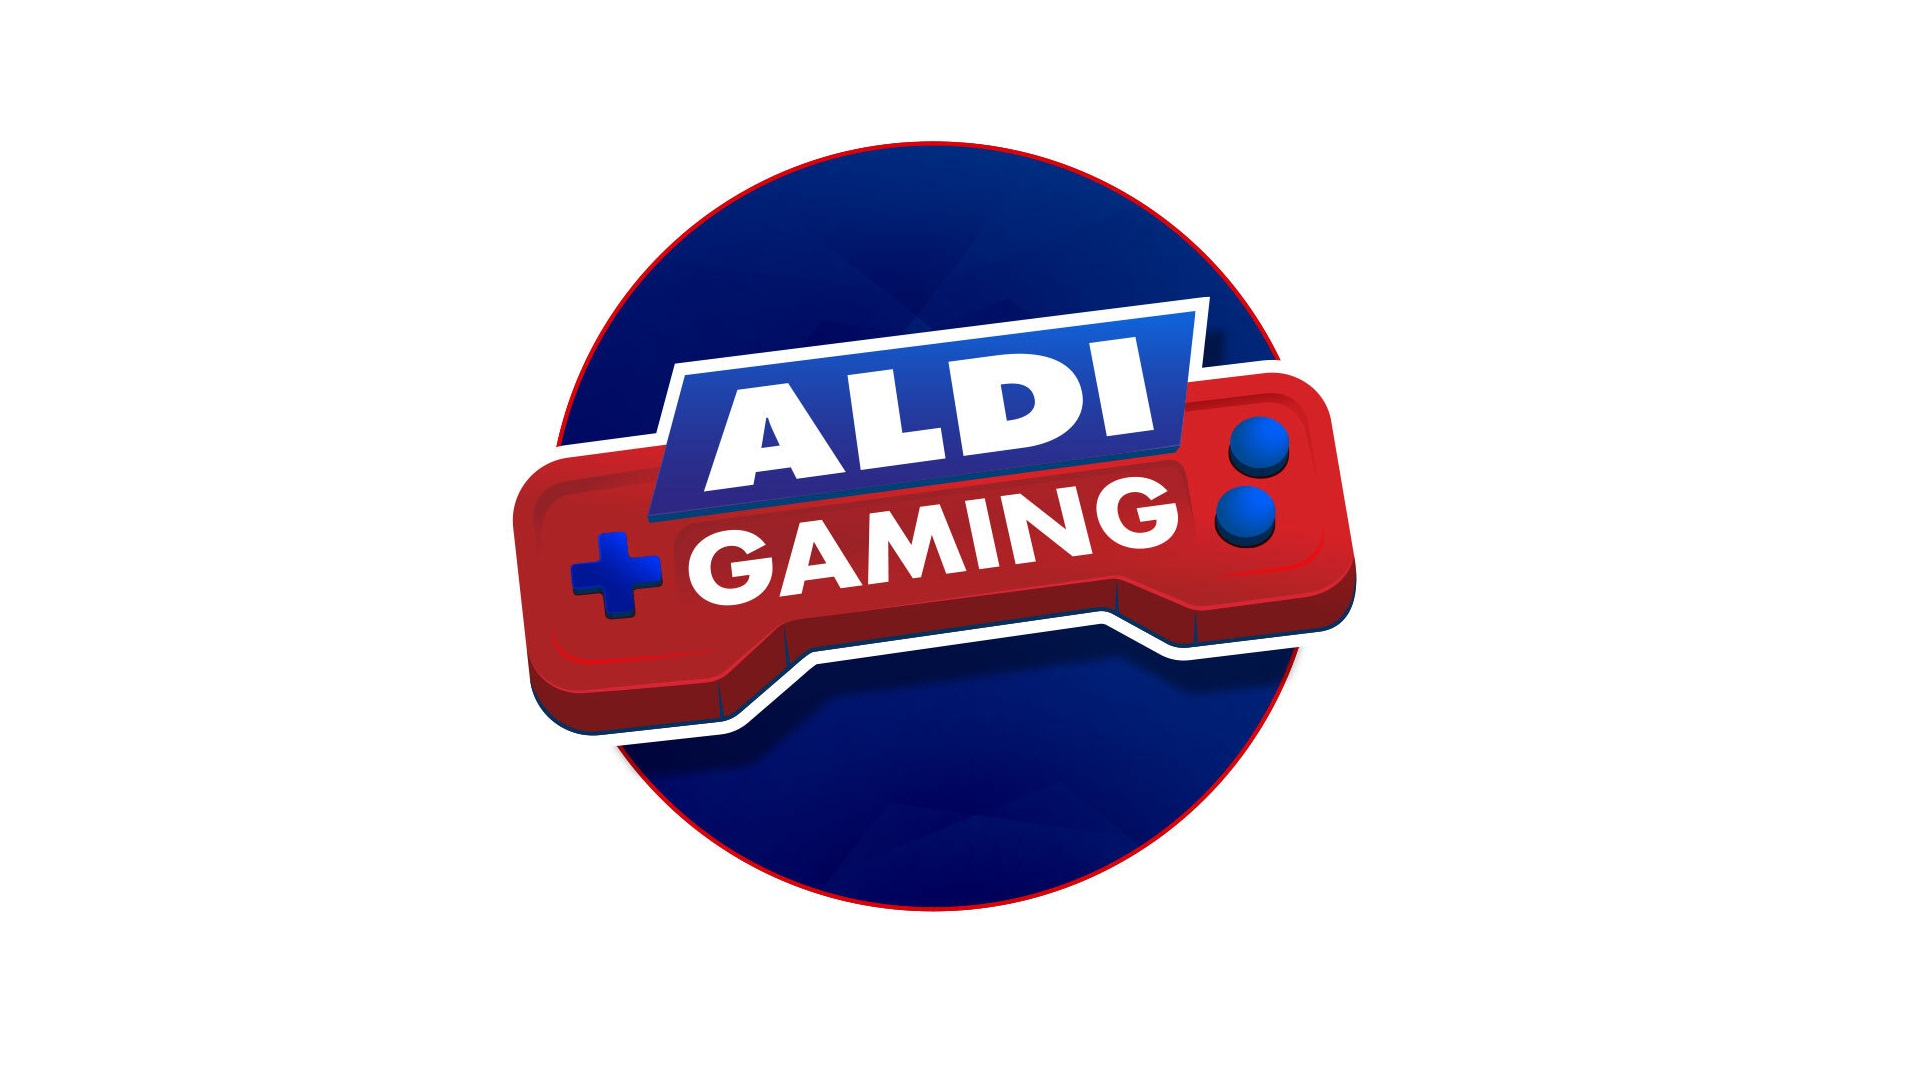 ALDI Gaming: Supermarket chain enters the gaming sector